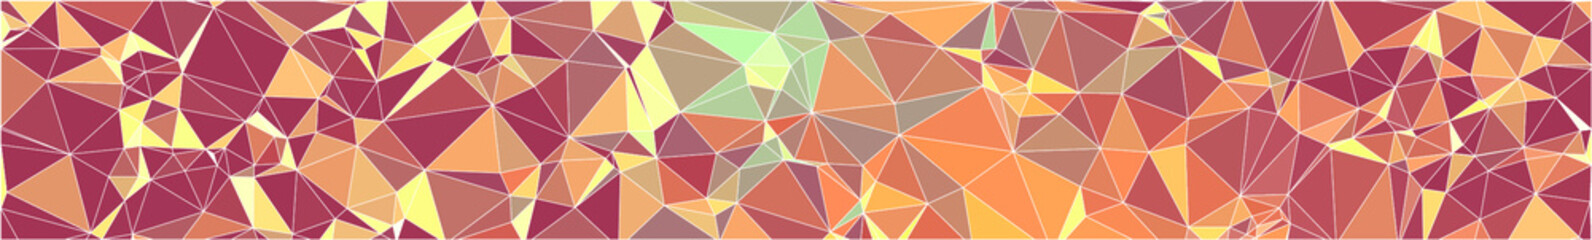 abstract geometric triangle shaped colorful vector background as pattern, texture, wallpaper or banner